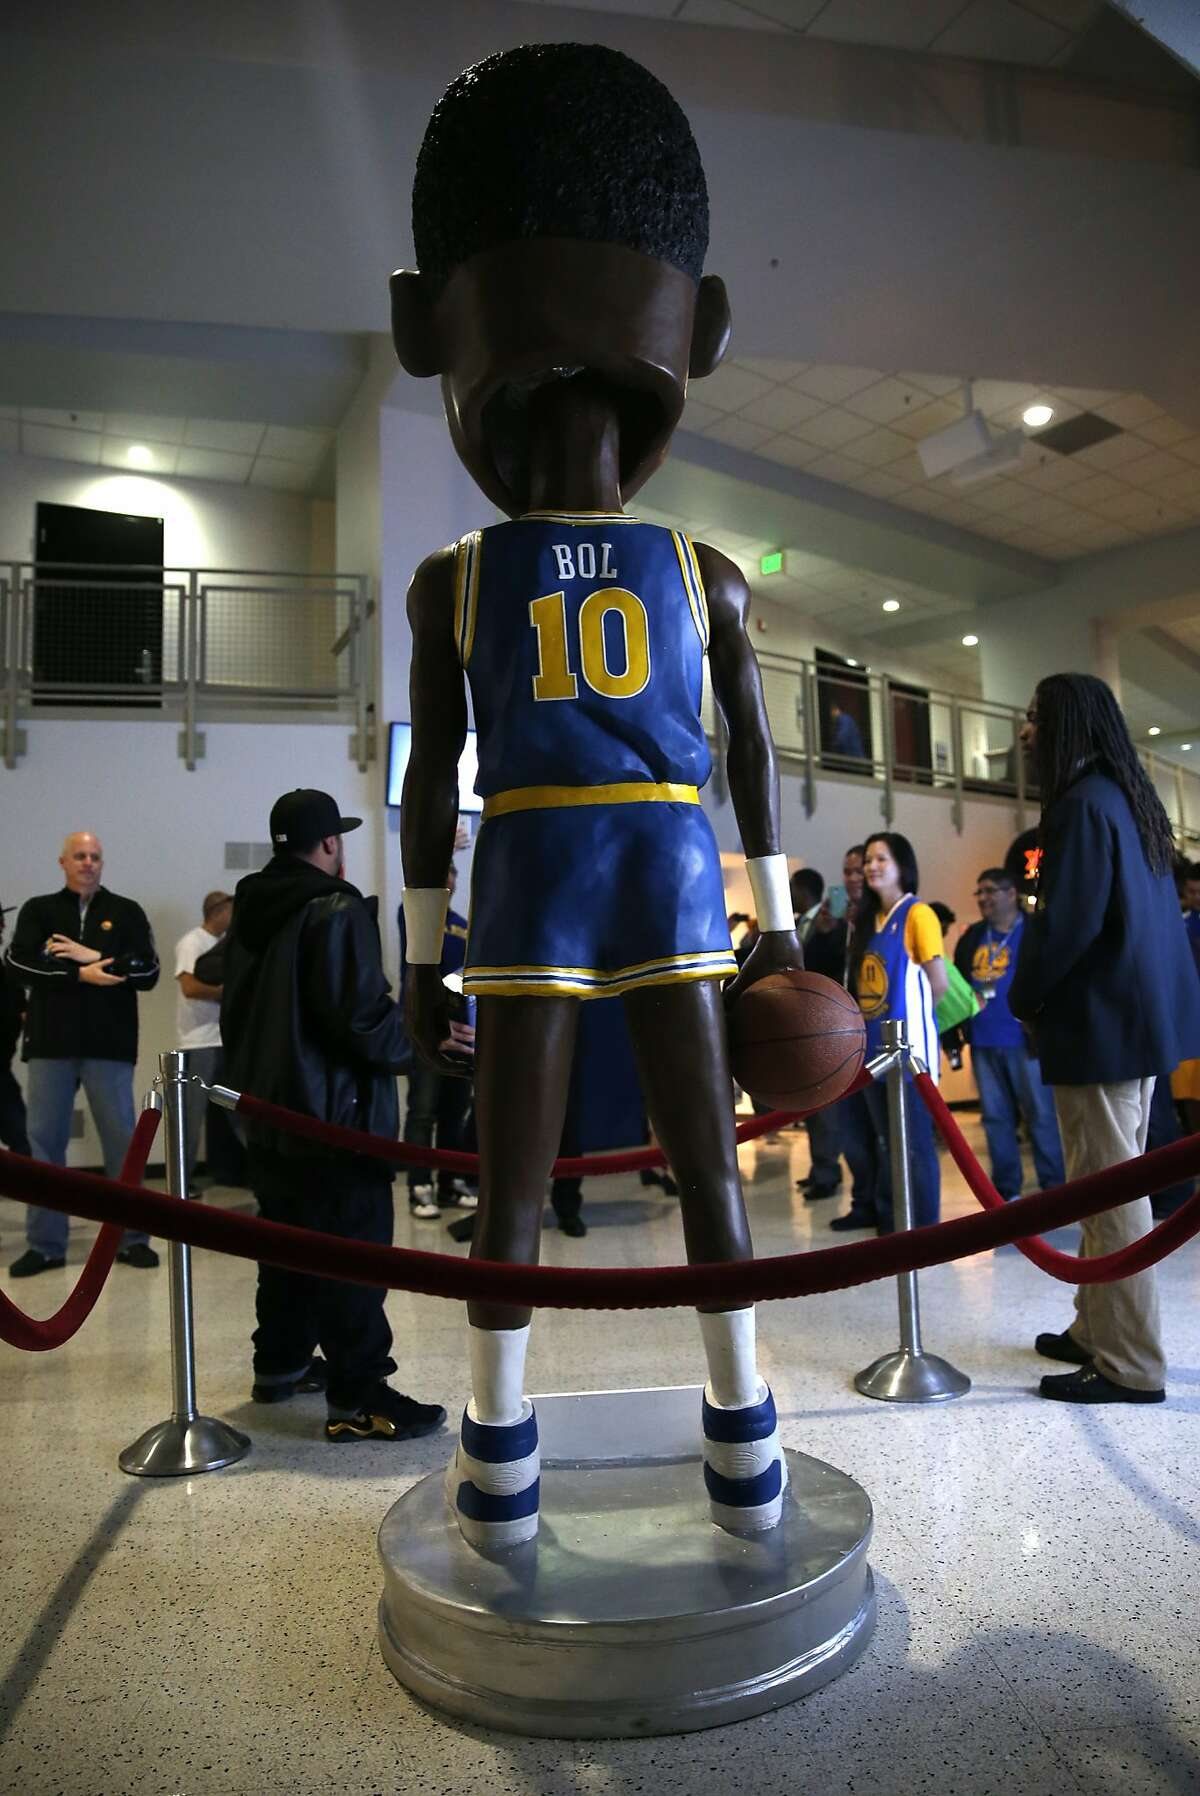 """Golden State Warriors' fans crowd around an 8' 4"""" Manute Bol bobble head at Oracle Arena in Oakland, Calif., on Tuesday, January 27, 2015."""